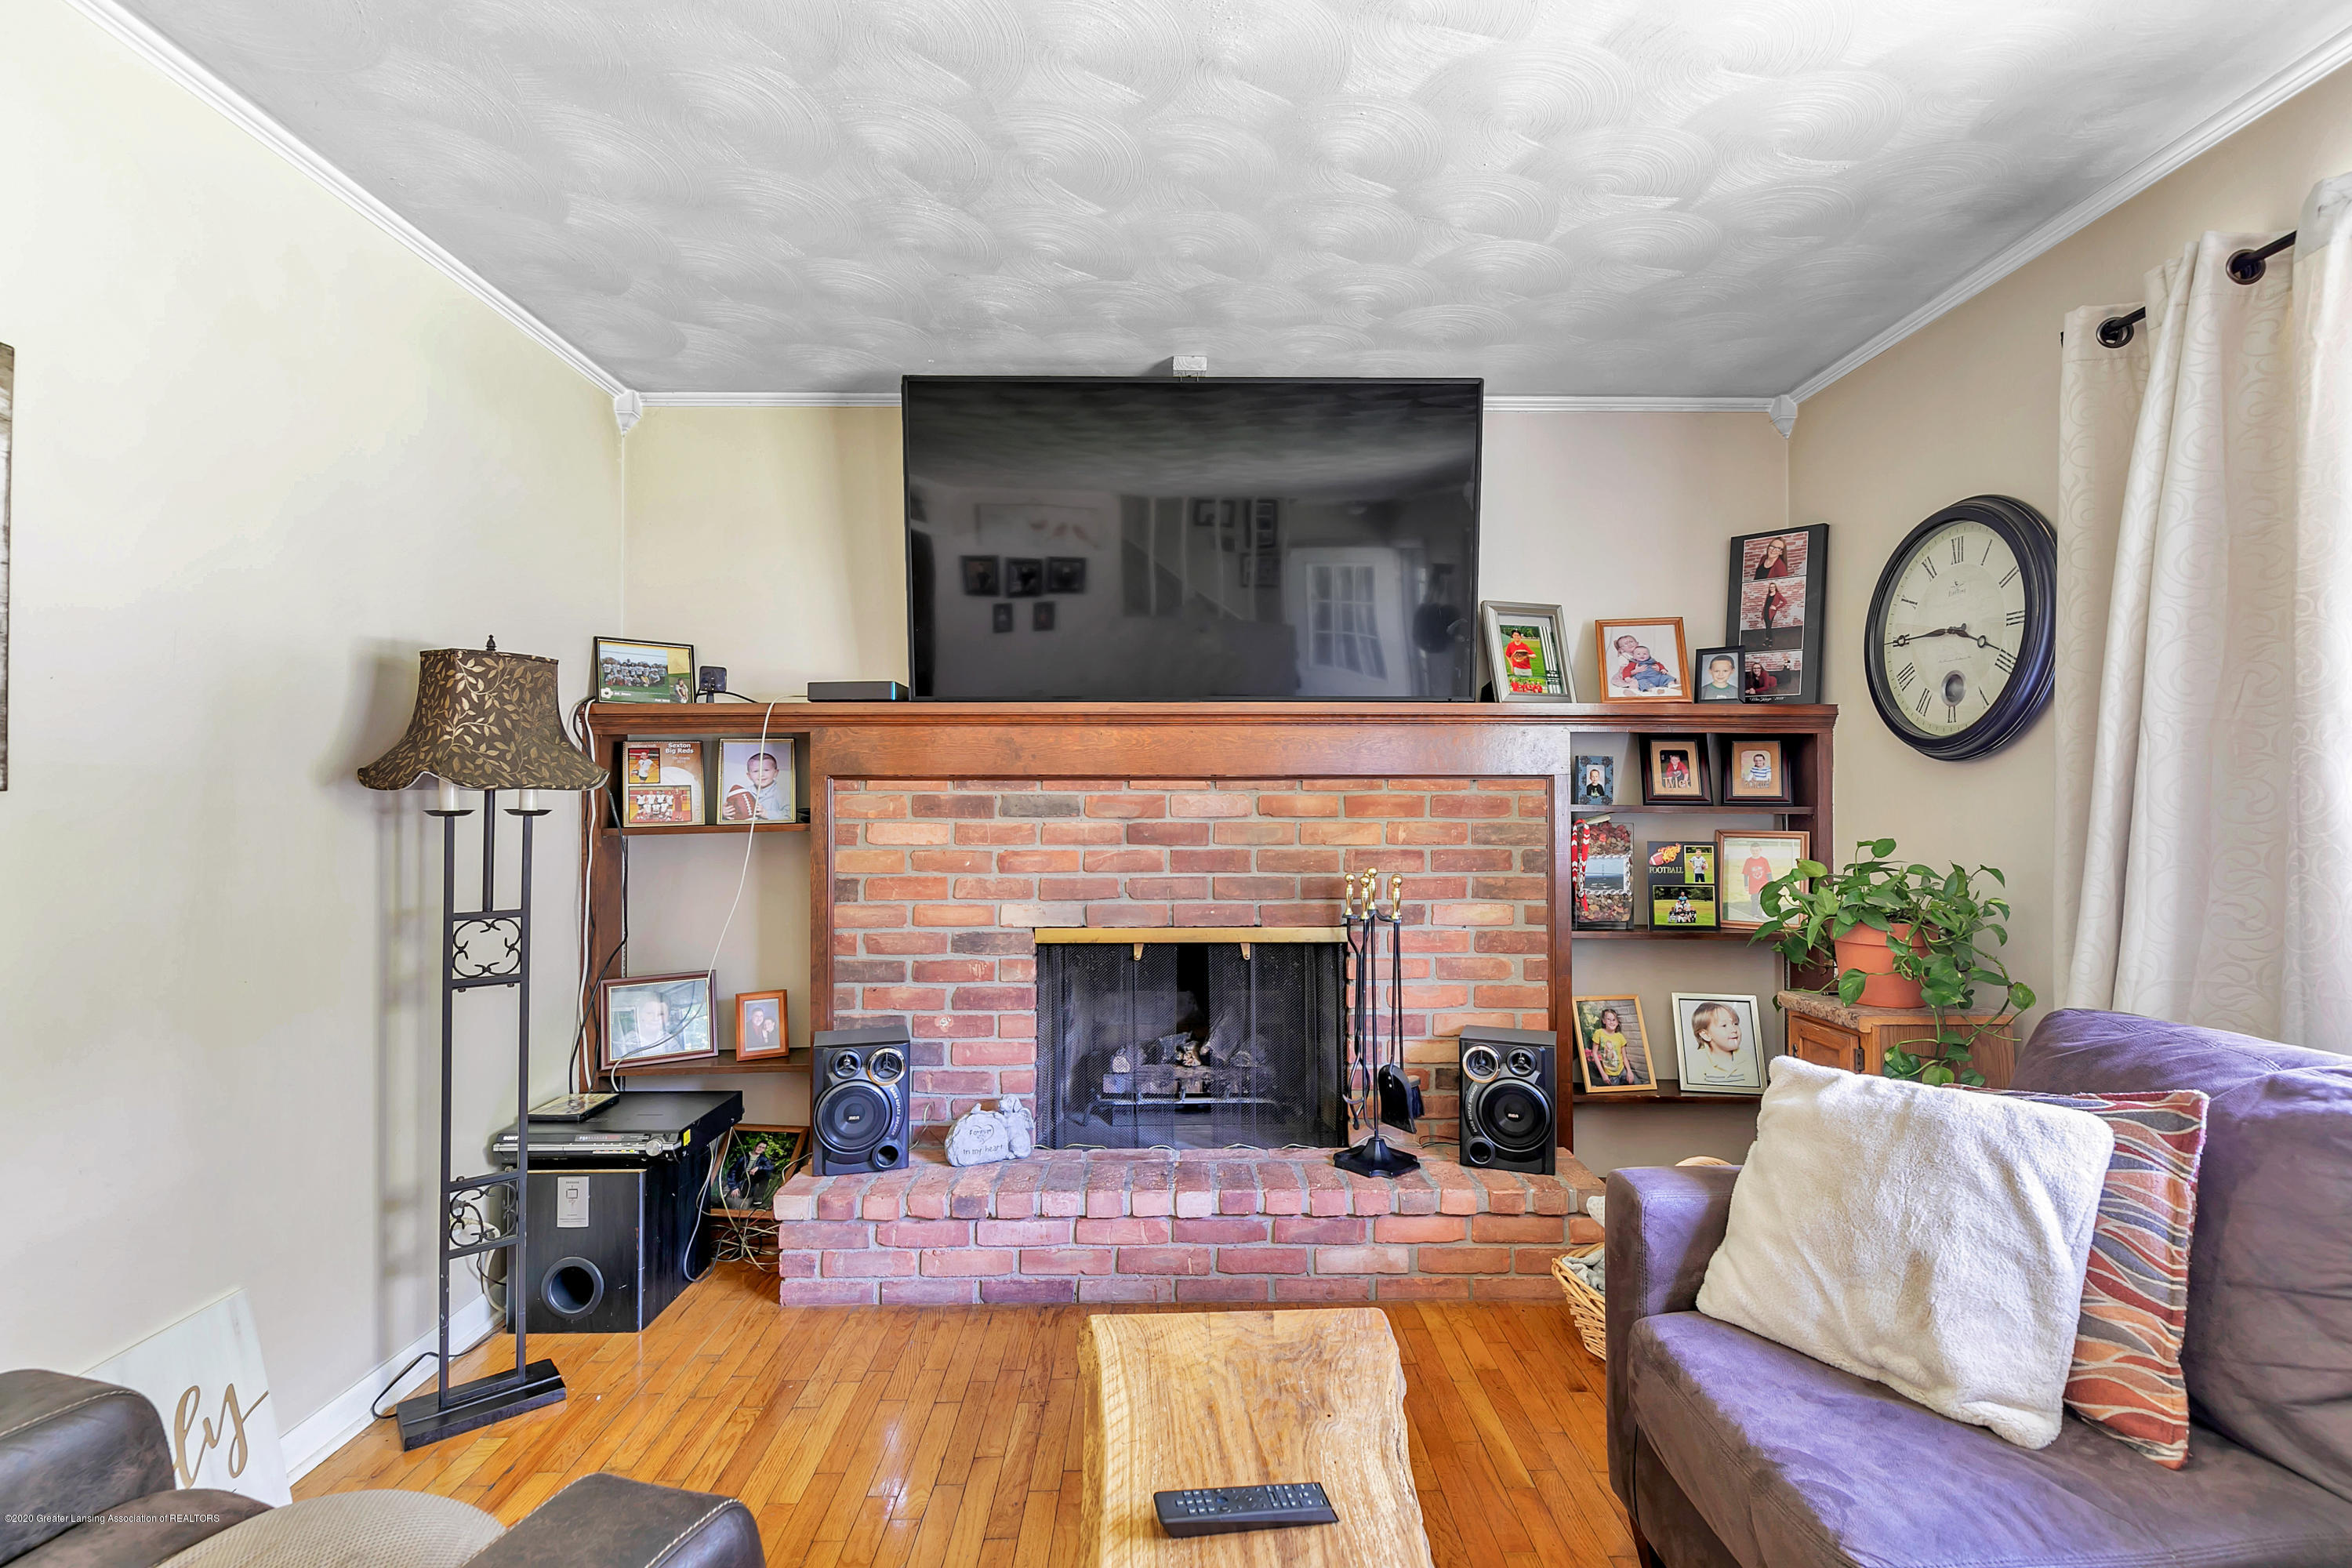 2844 S Deerfield Ave - 9I3A2560 - 5